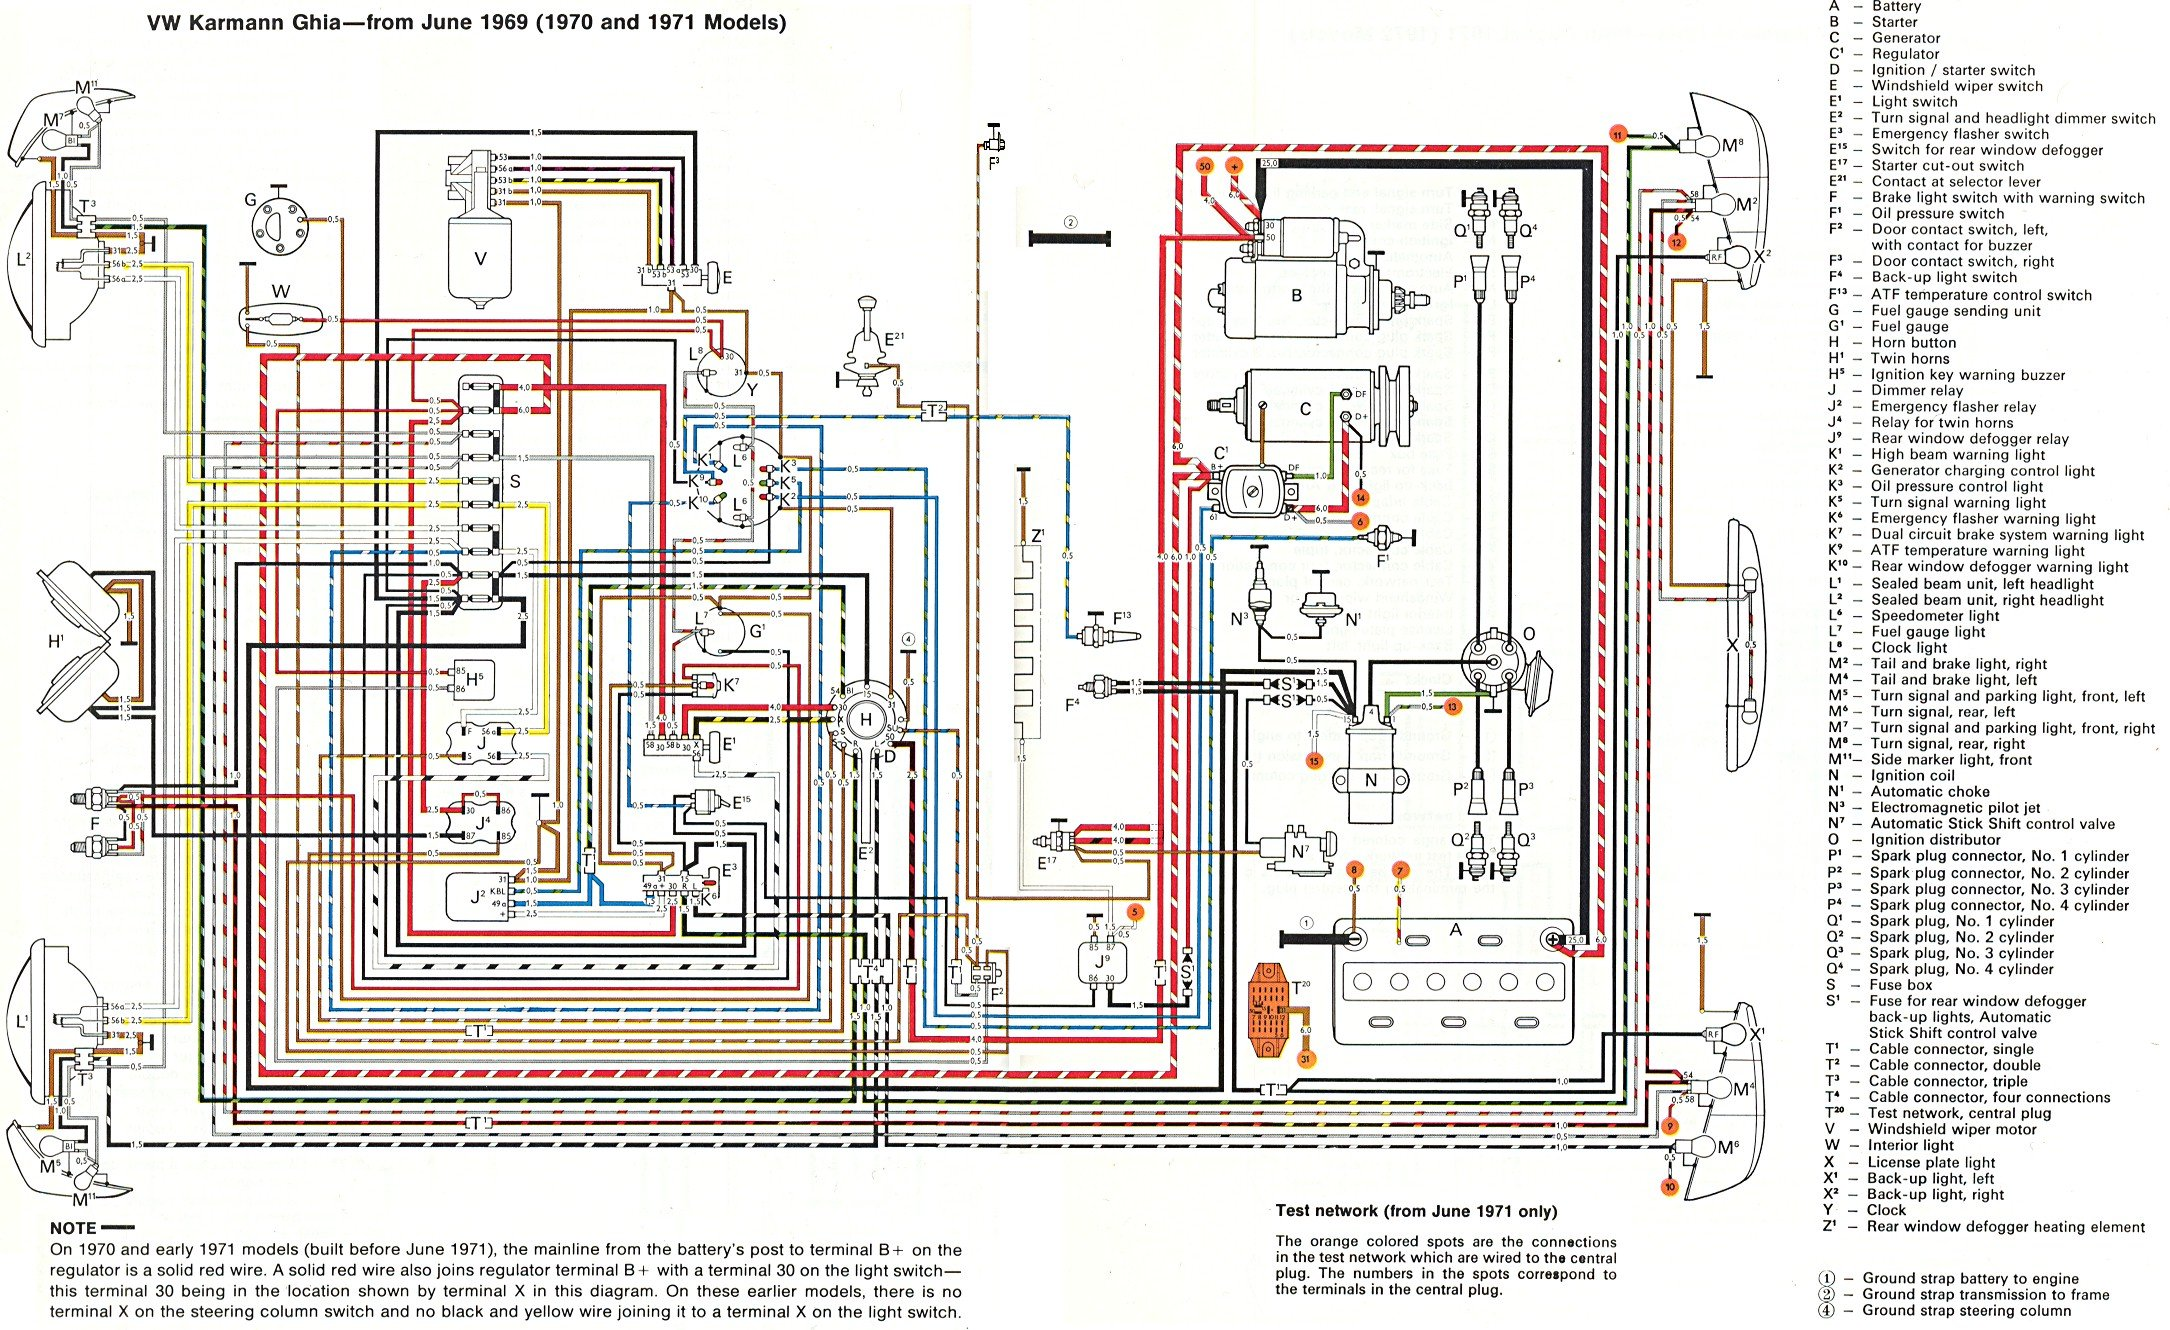 Engine Wiring Diagrams 1960 Worksheet And Diagram Mustang Thesamba Com Karmann Ghia Rh 1966 Nova